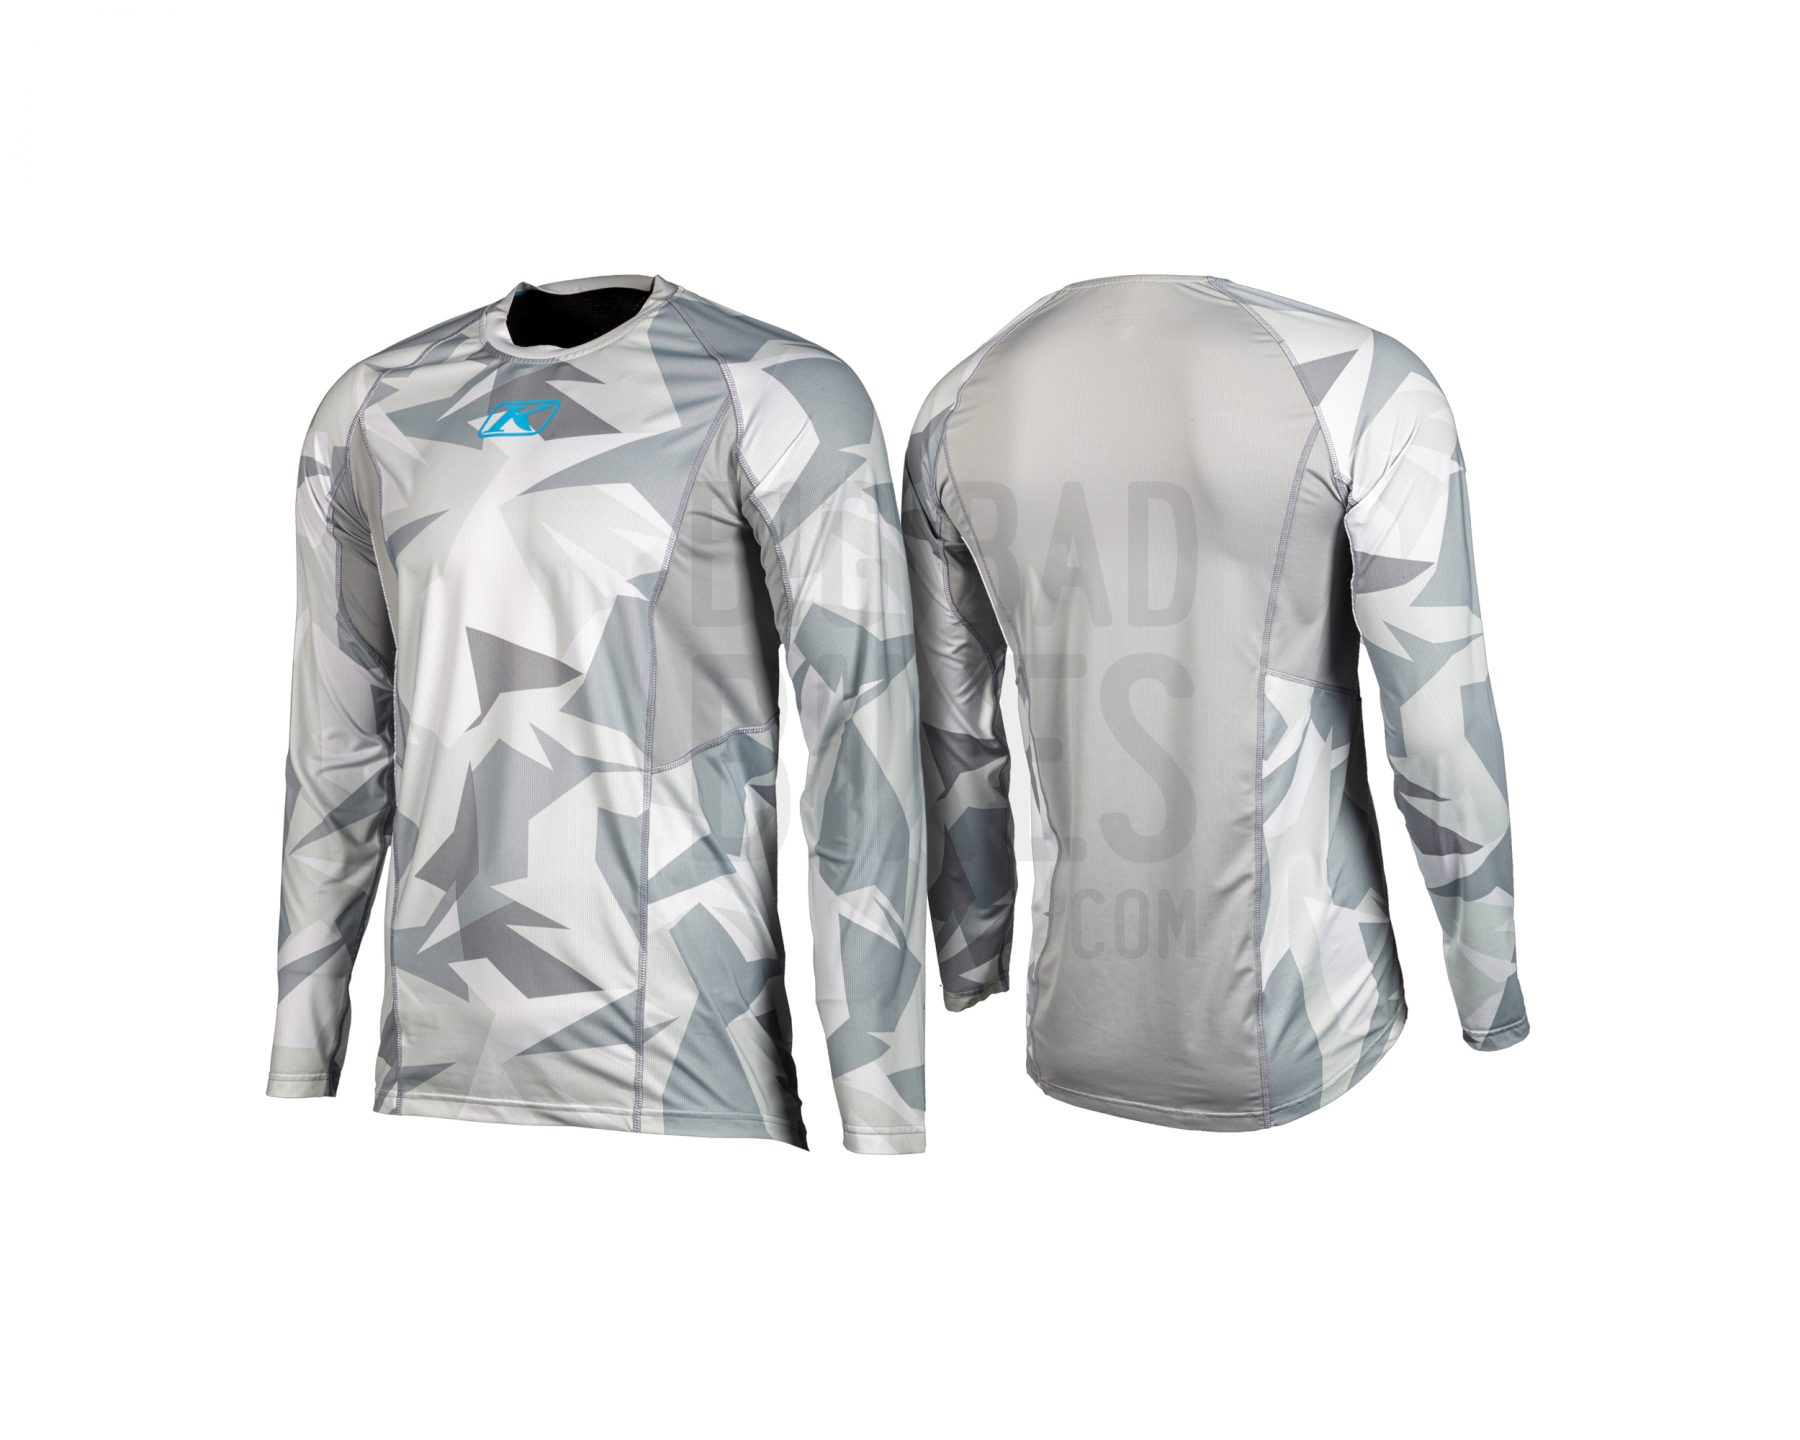 3504-000_Light Gray Camo_Secondary_02